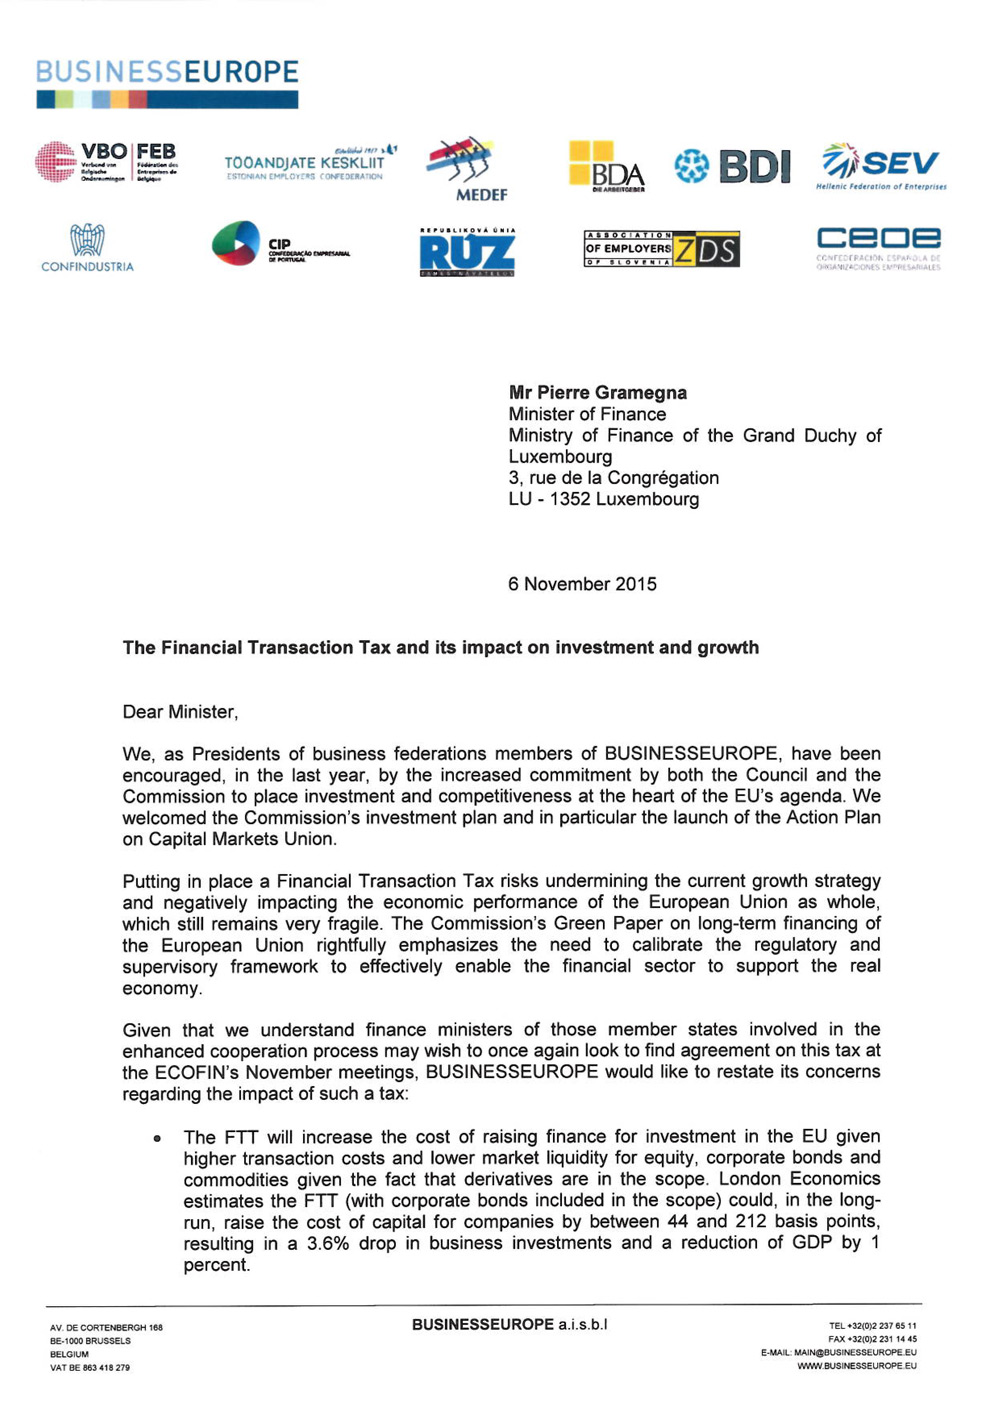 2015-11-06-Letter-on-FTT-to-ECOFIN-Council-November---Min--Gramegna---LU-1